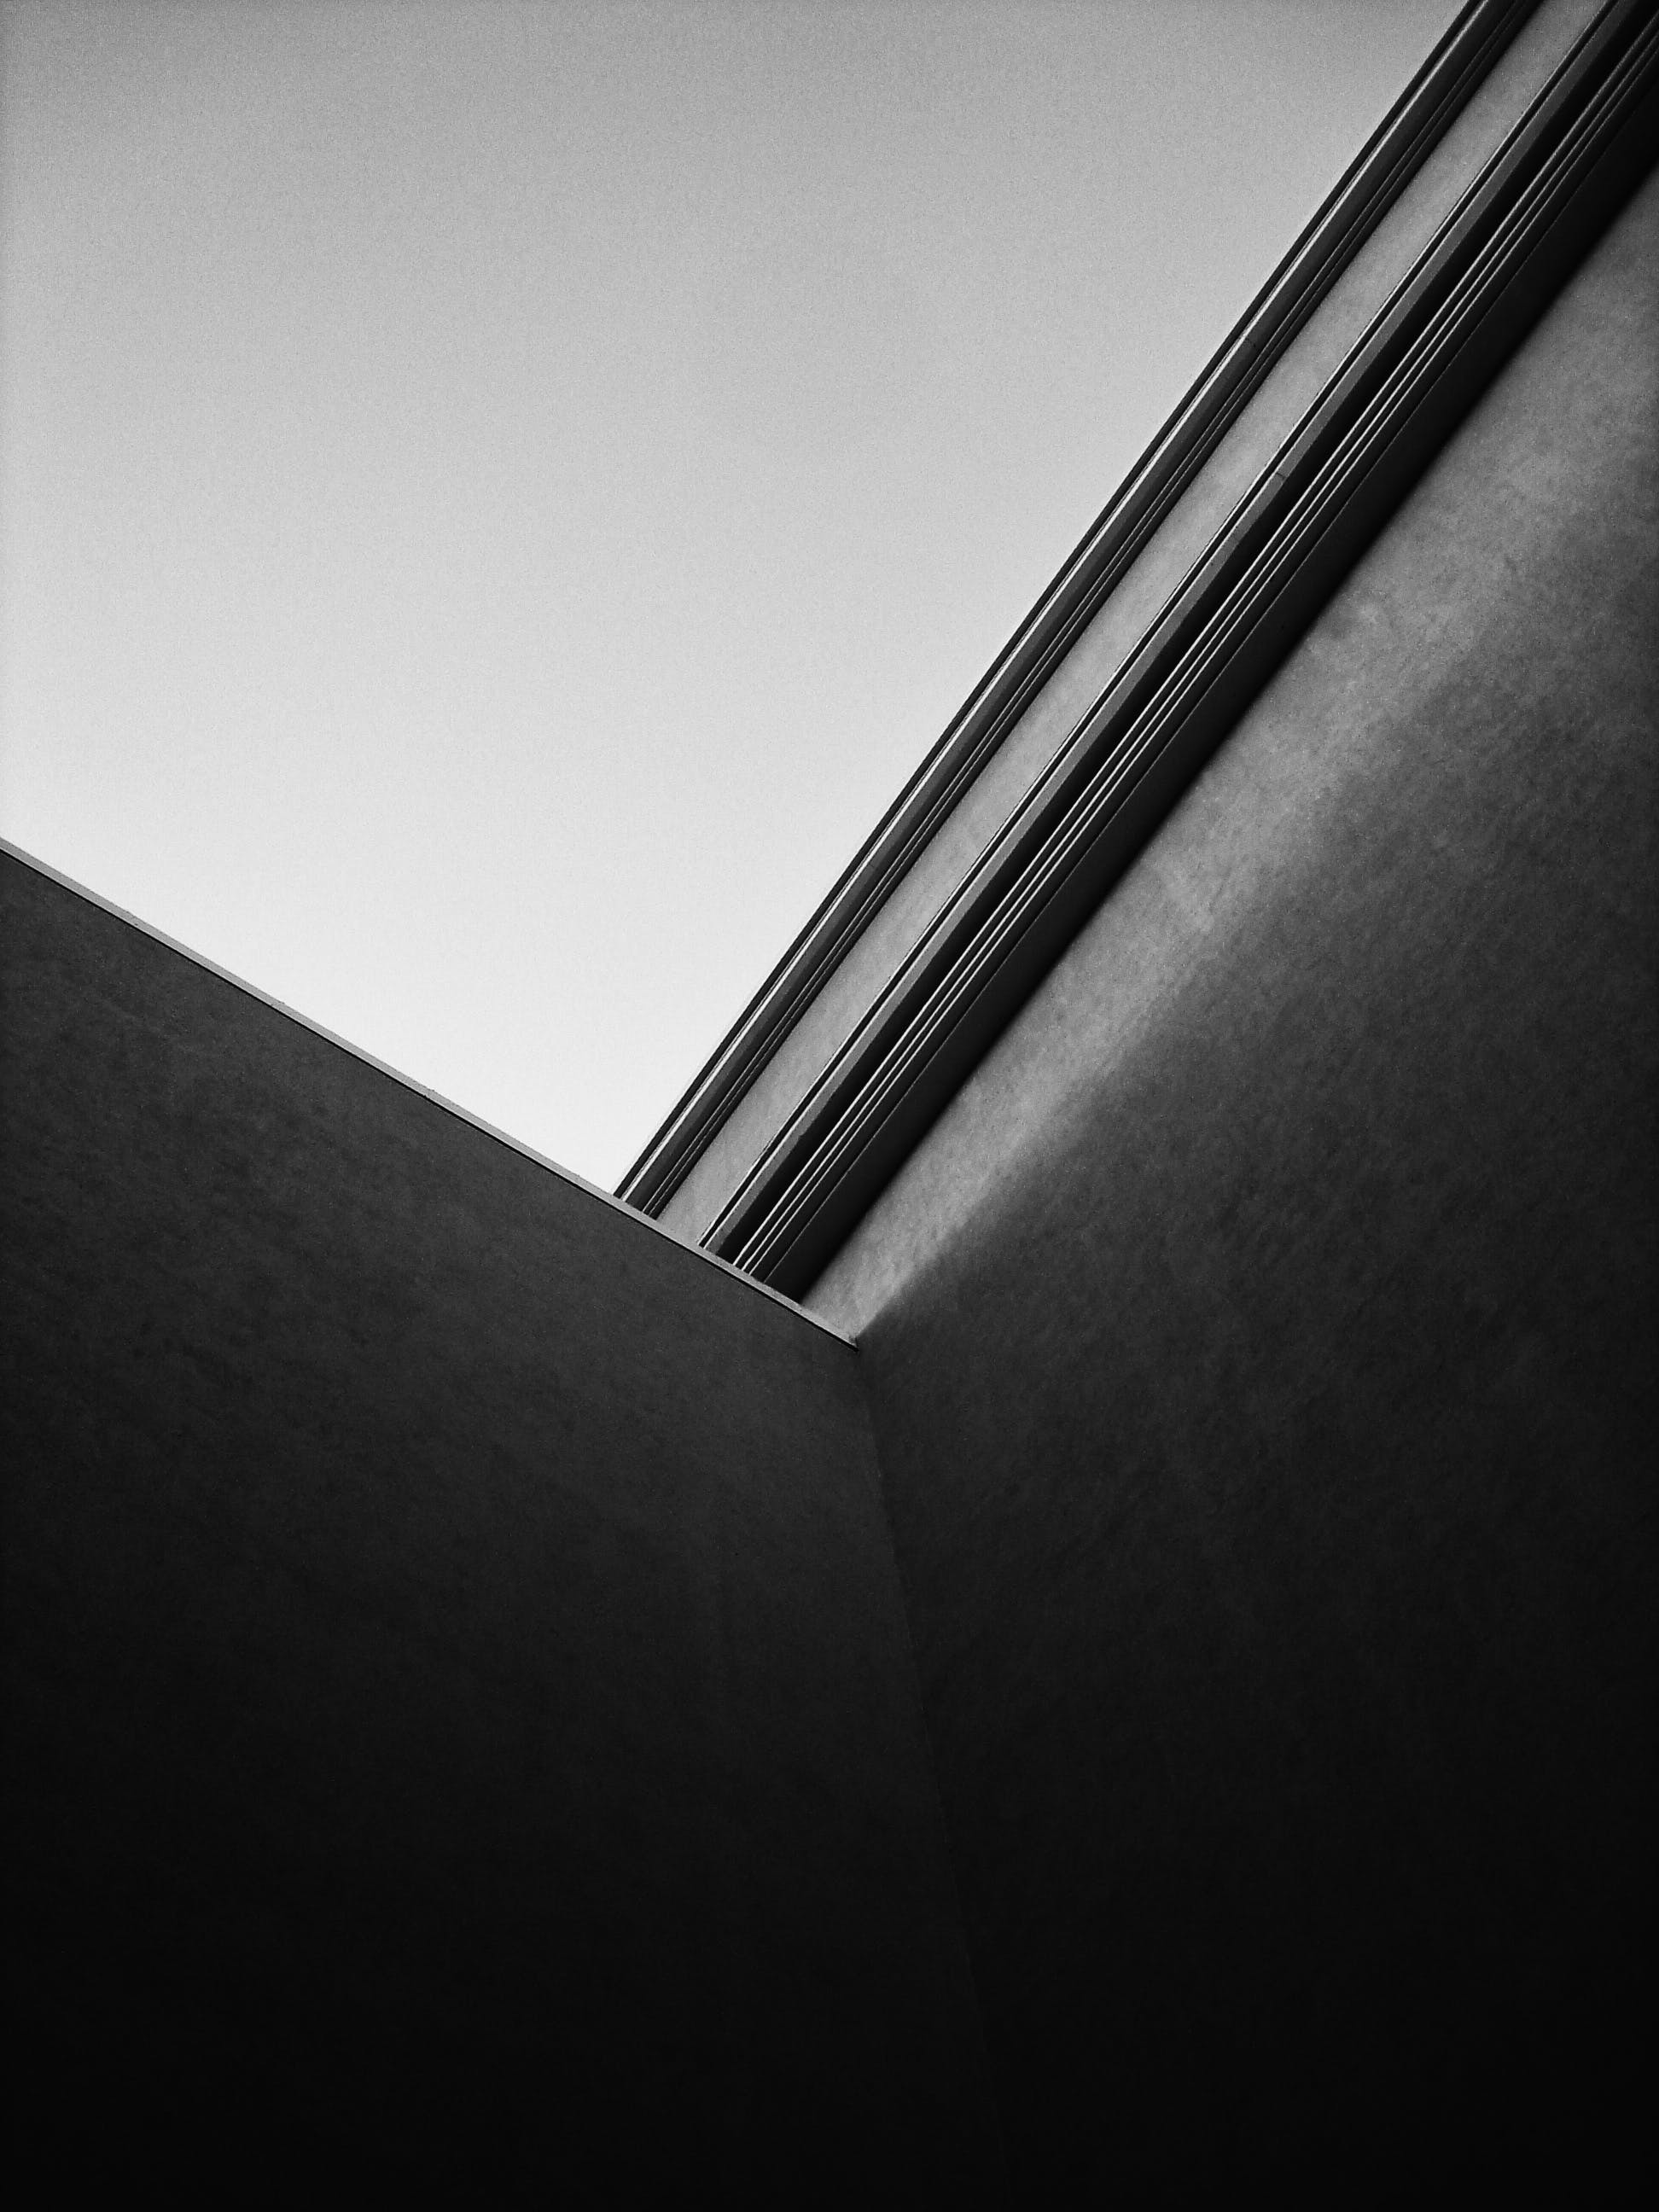 Free stock photo of architecture, black, black and white, city